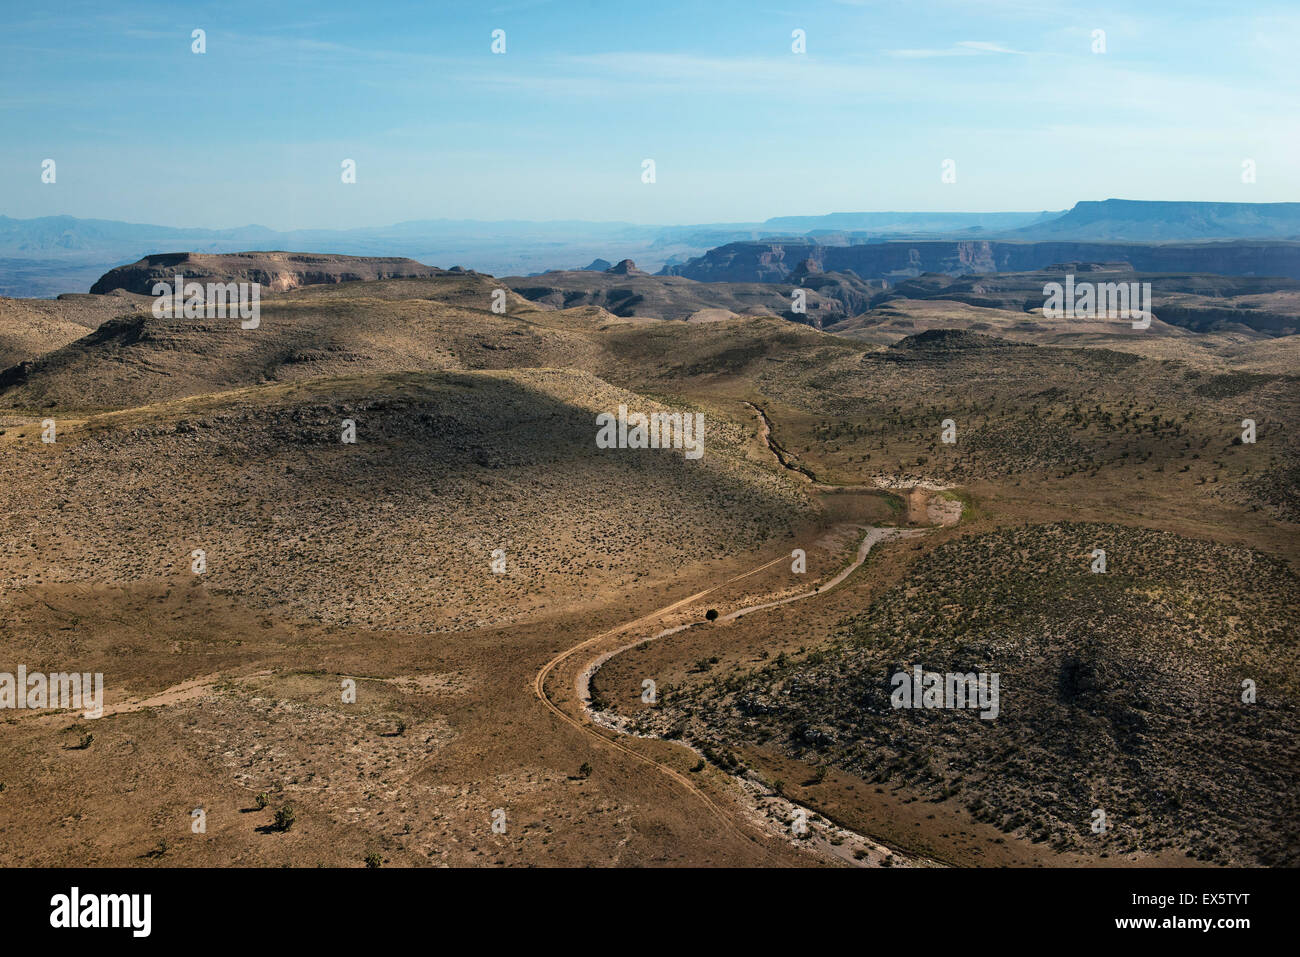 helicopter view of scenery between Las vegas and Grand Canyon - Stock Image